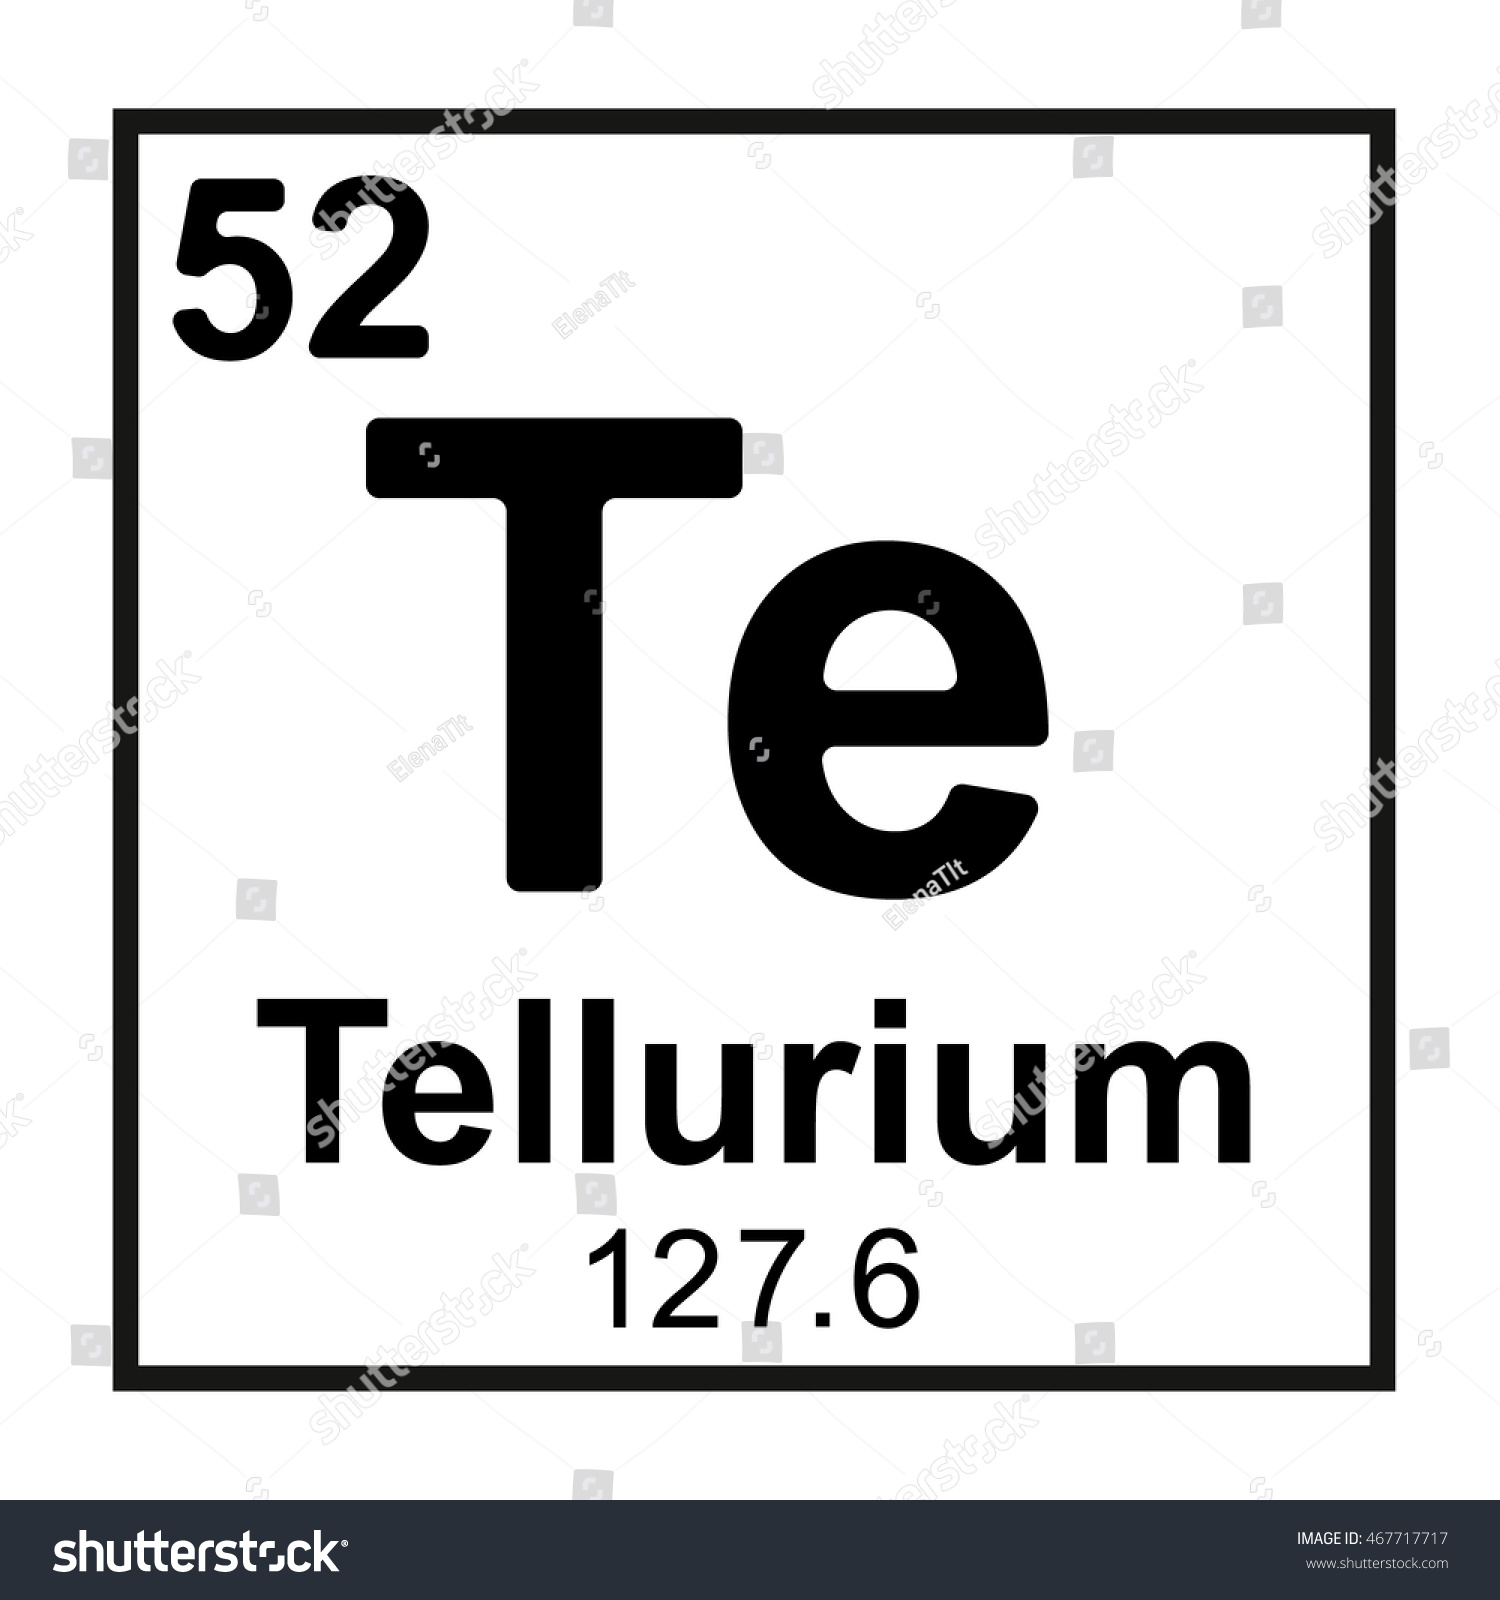 Periodic table element tellurium stock vector 467717717 shutterstock periodic table element tellurium gamestrikefo Choice Image